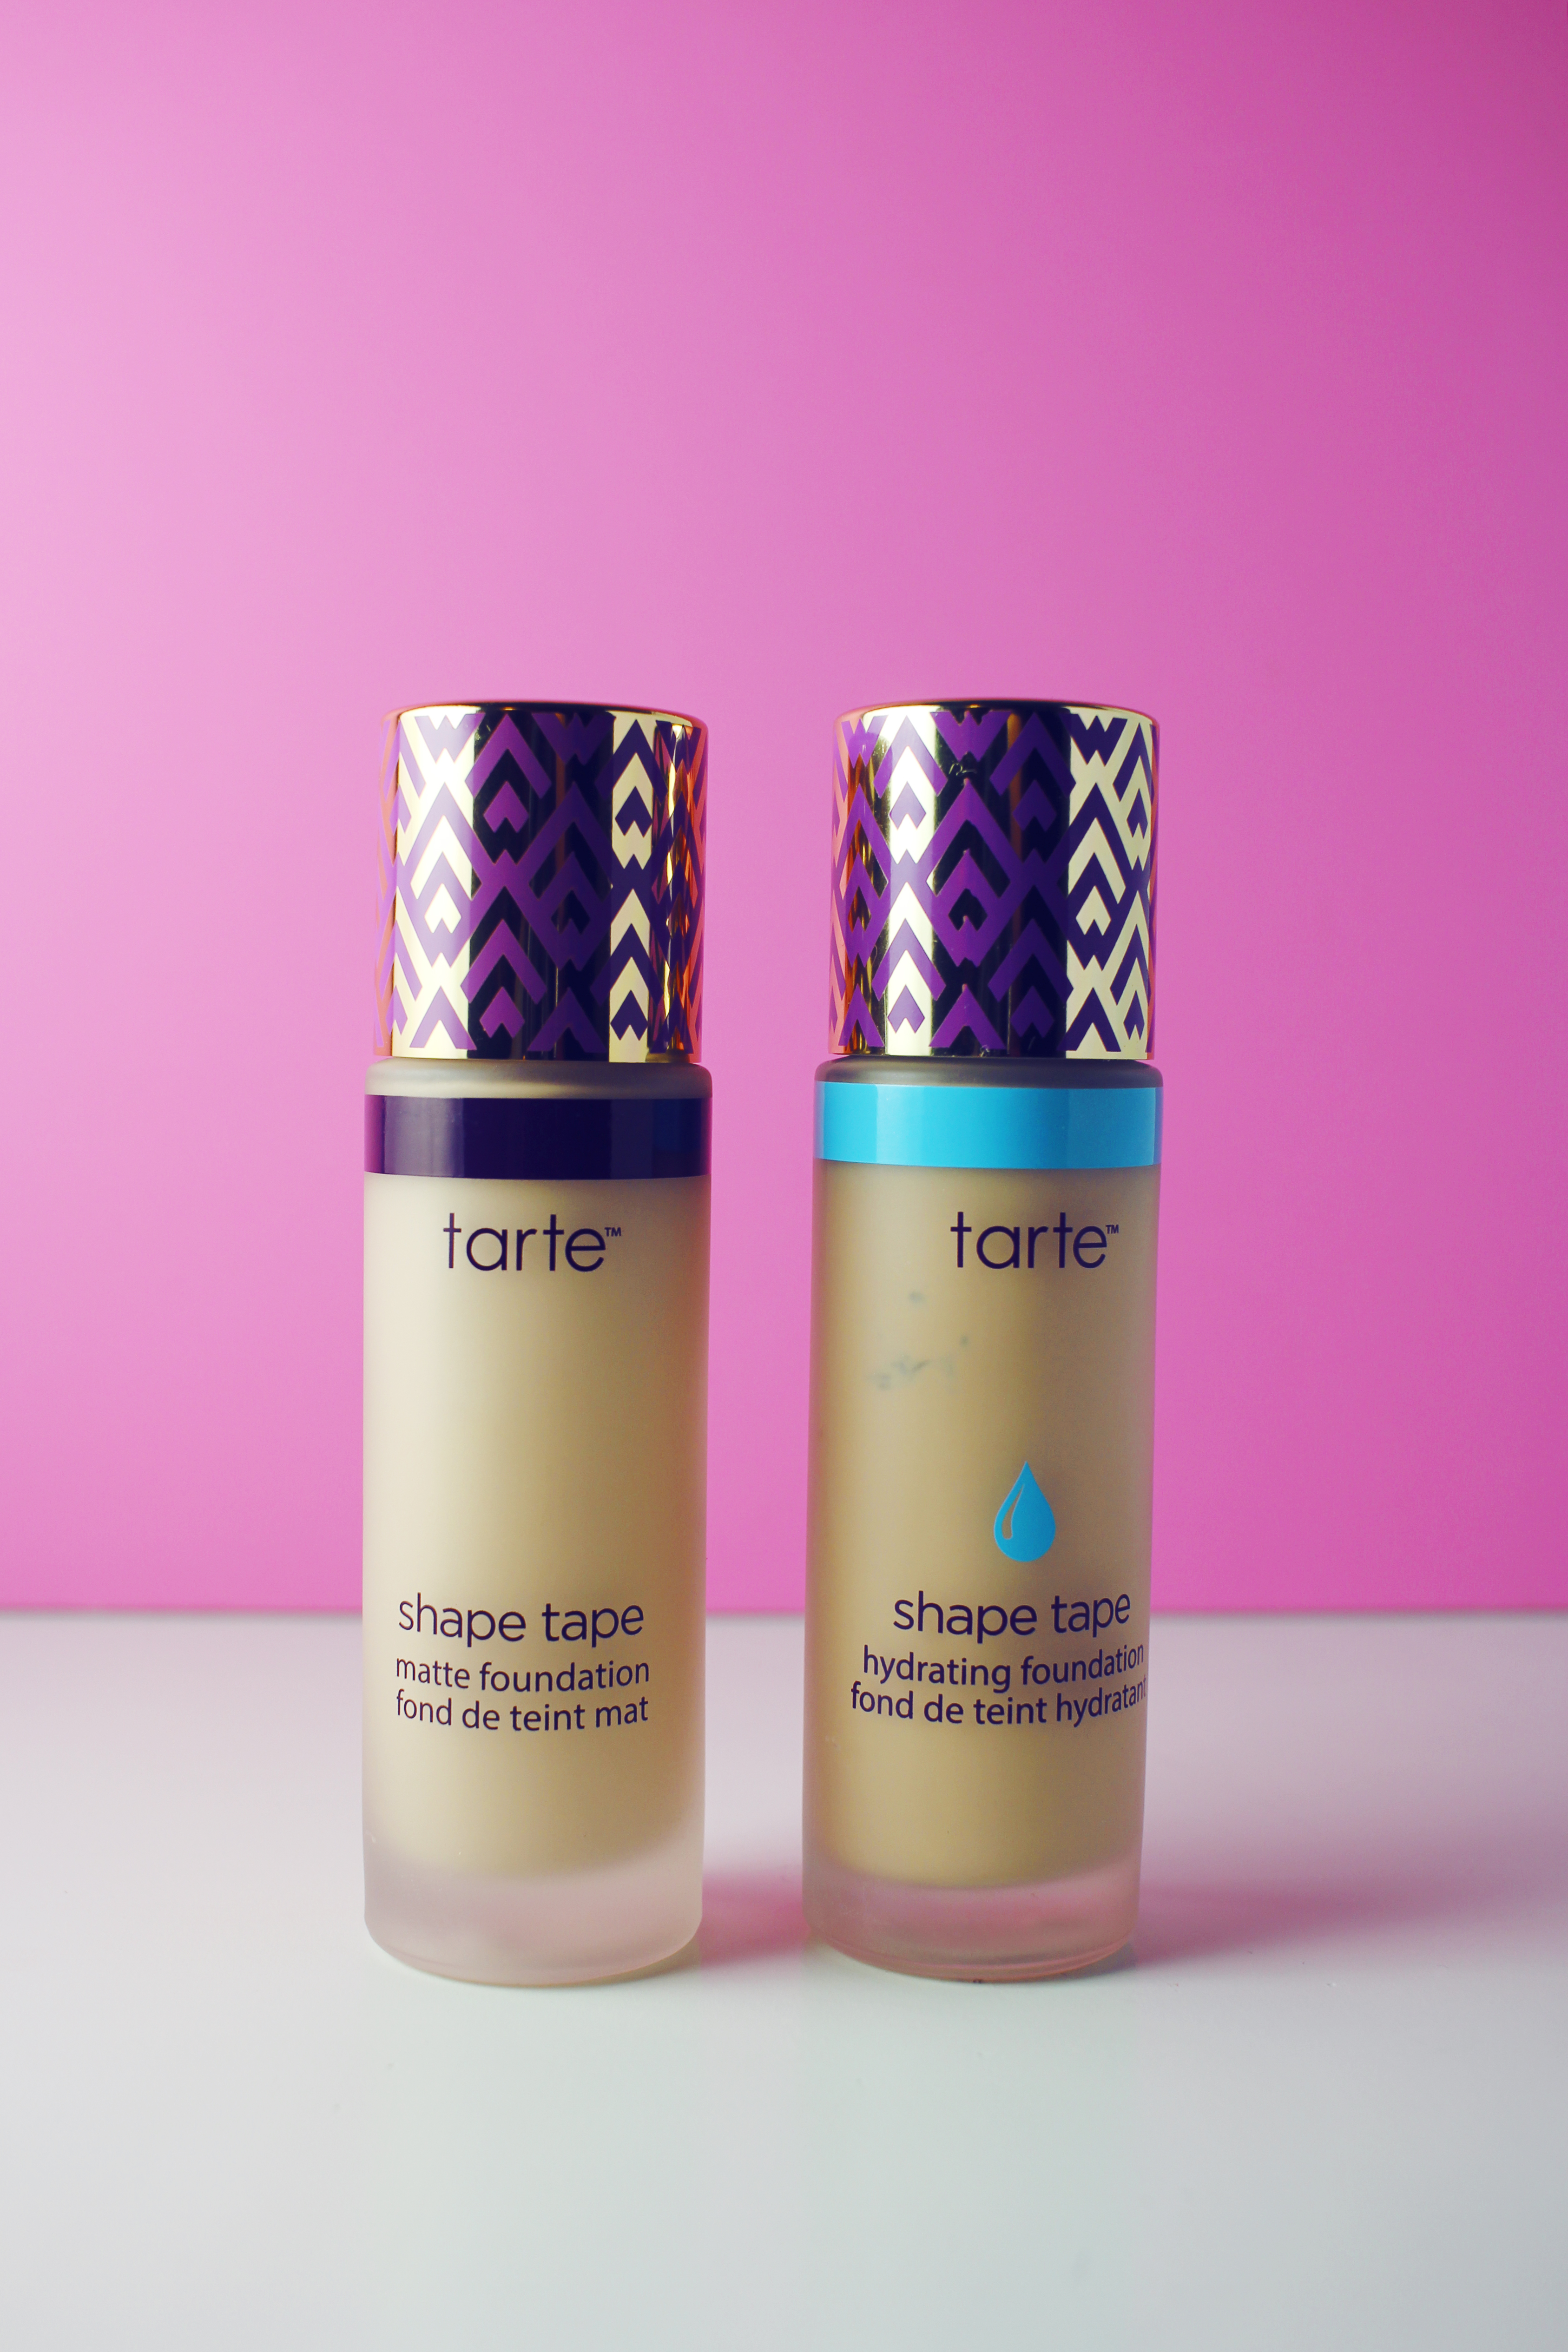 Comparing Shape Tape Matte and Hydrating Foundations by Tarte Cosmetics